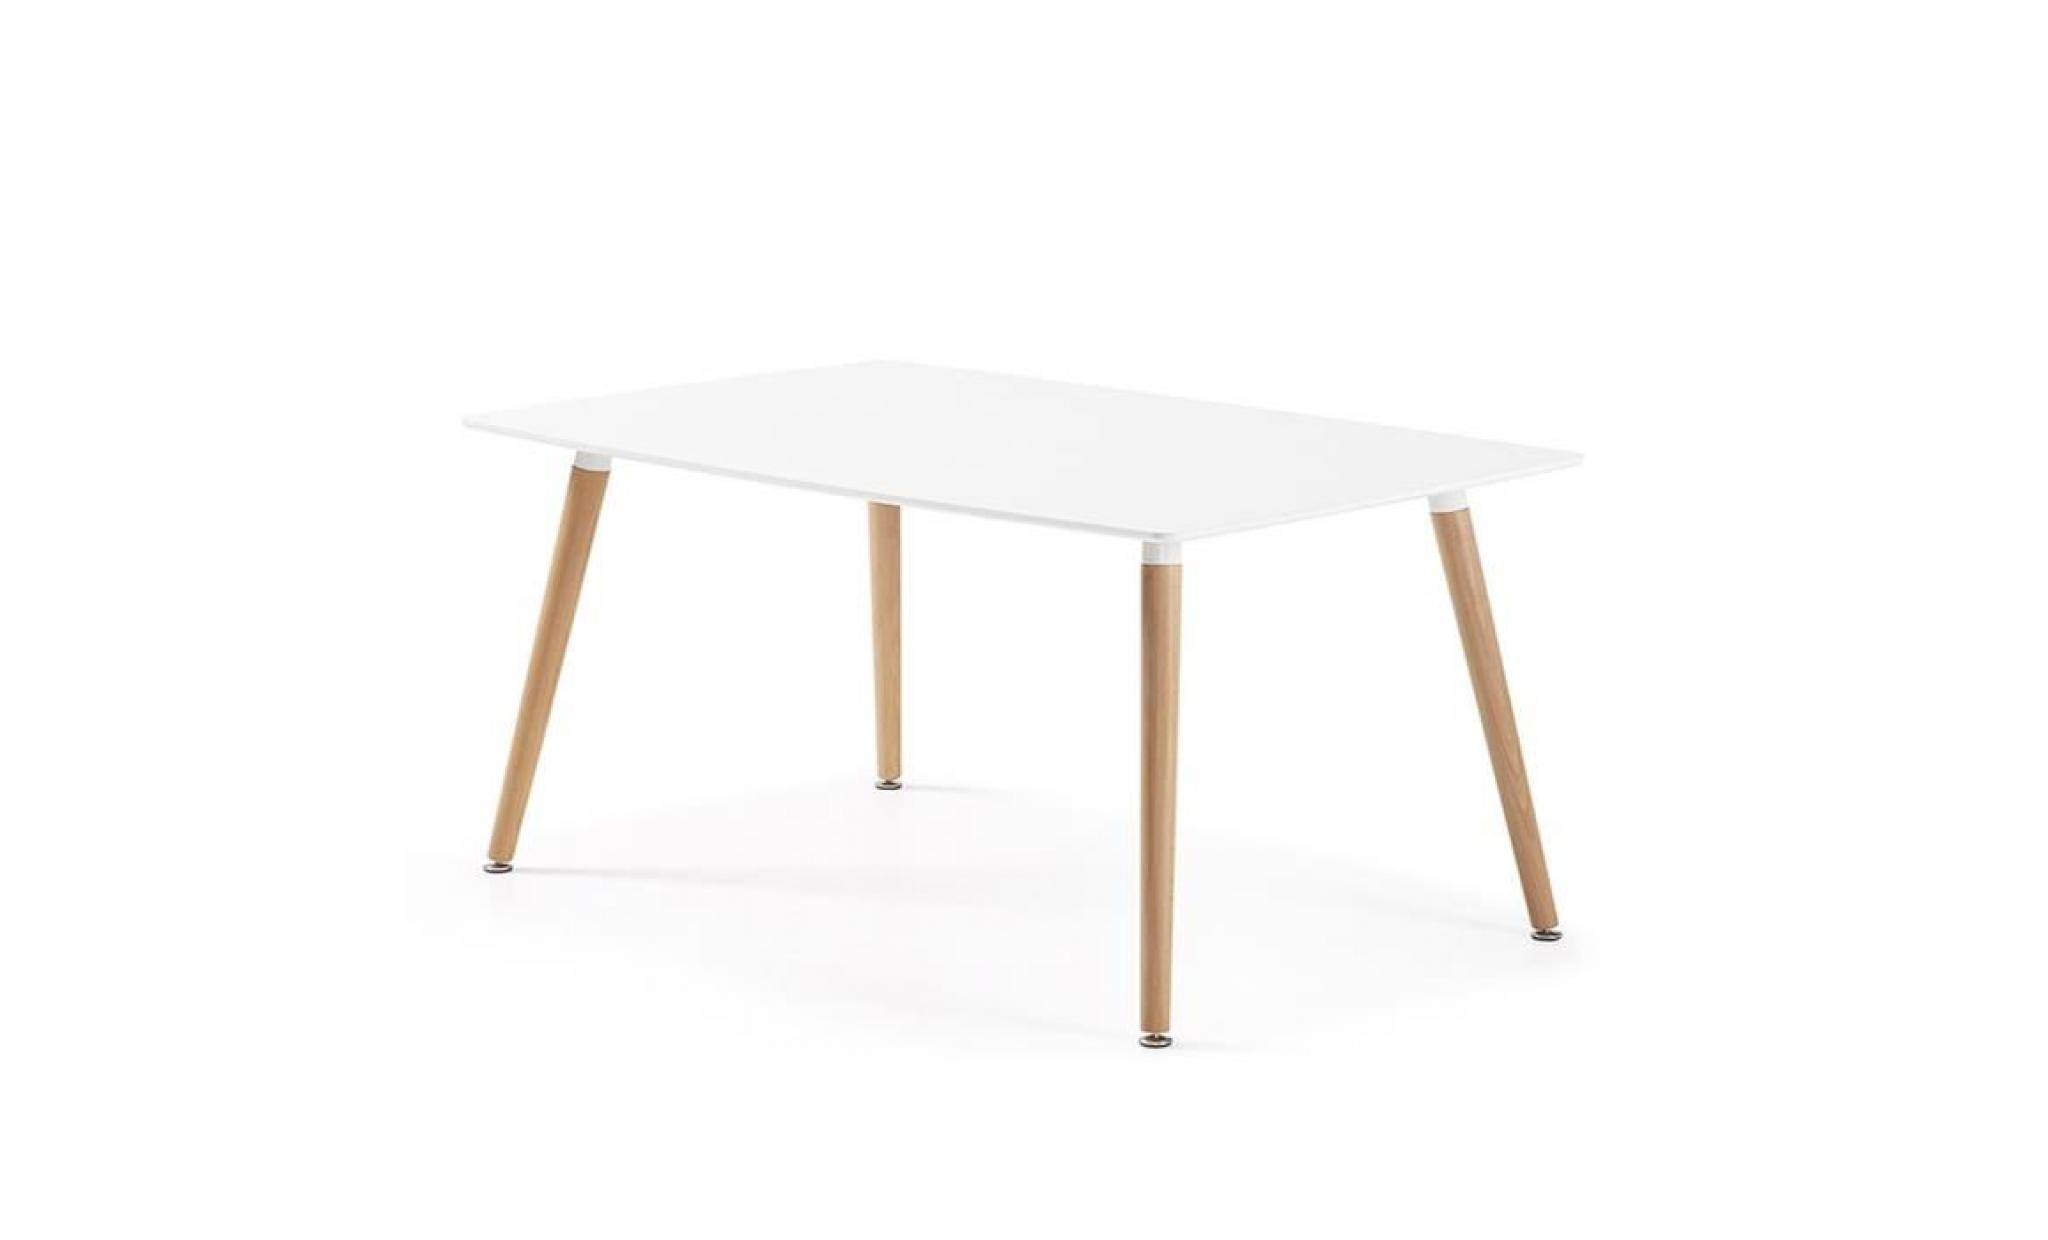 Table manger rectangulaire design blanche en bois laqu for Table a manger blanche design